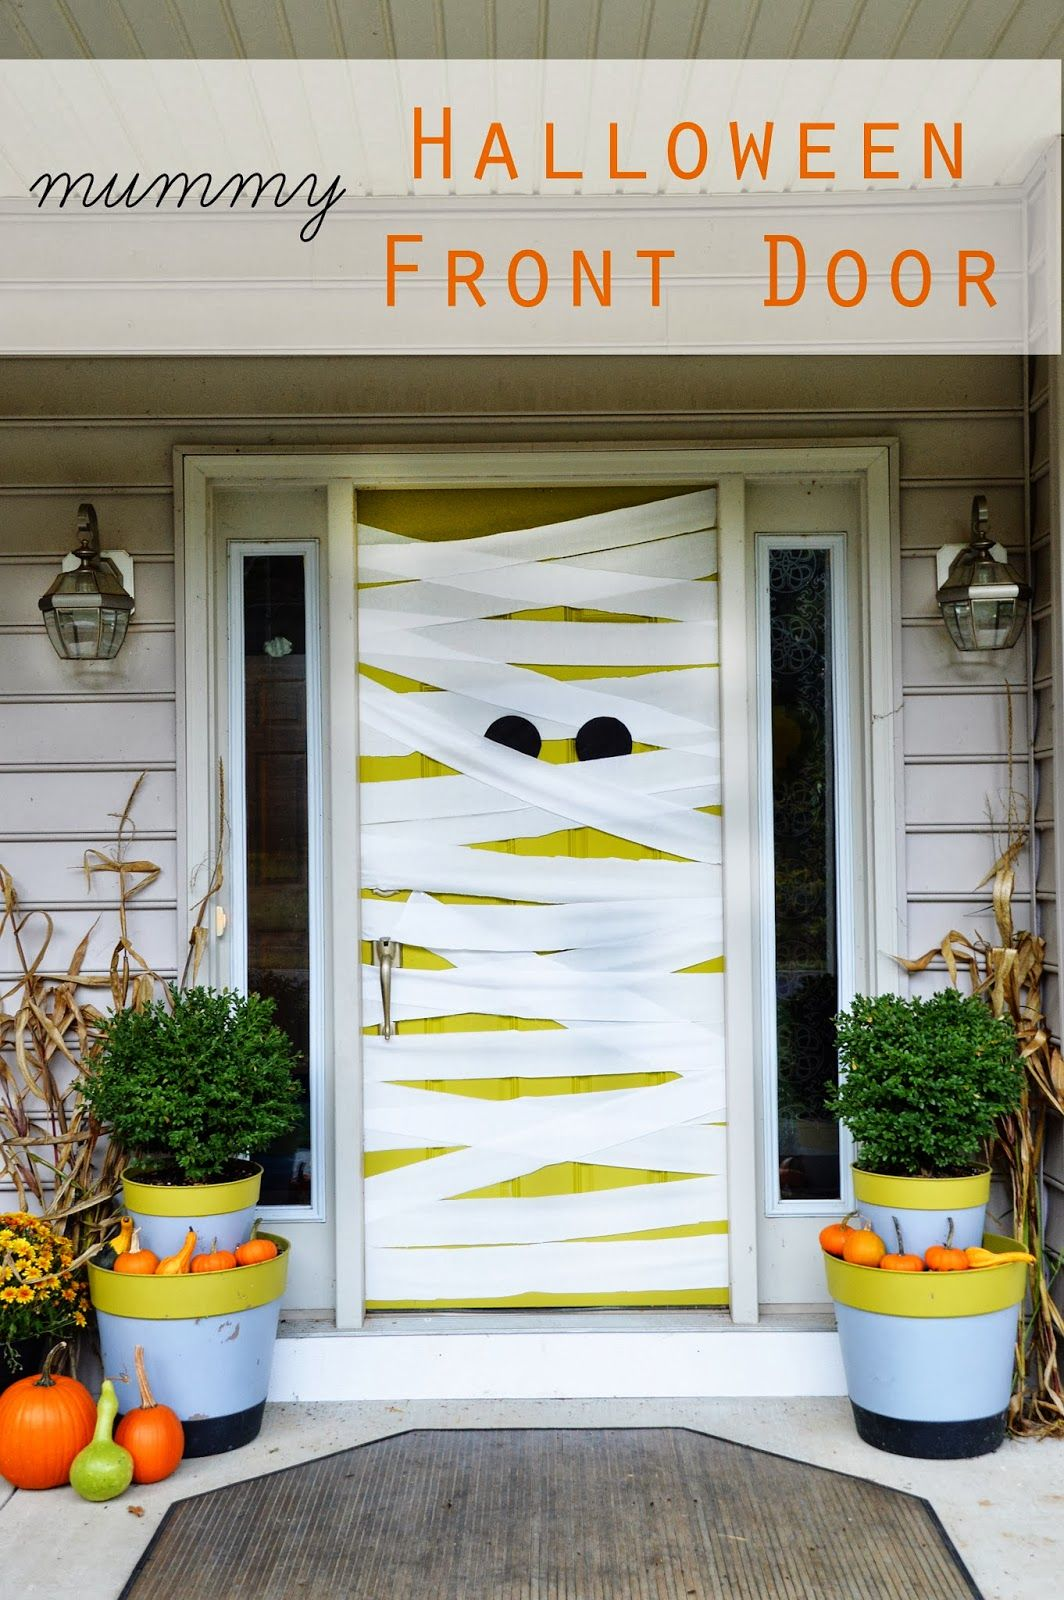 Fall  Halloween Porch Decor \u2013 East Coast Creative Blog holidays - Halloween Door Decoration Ideas